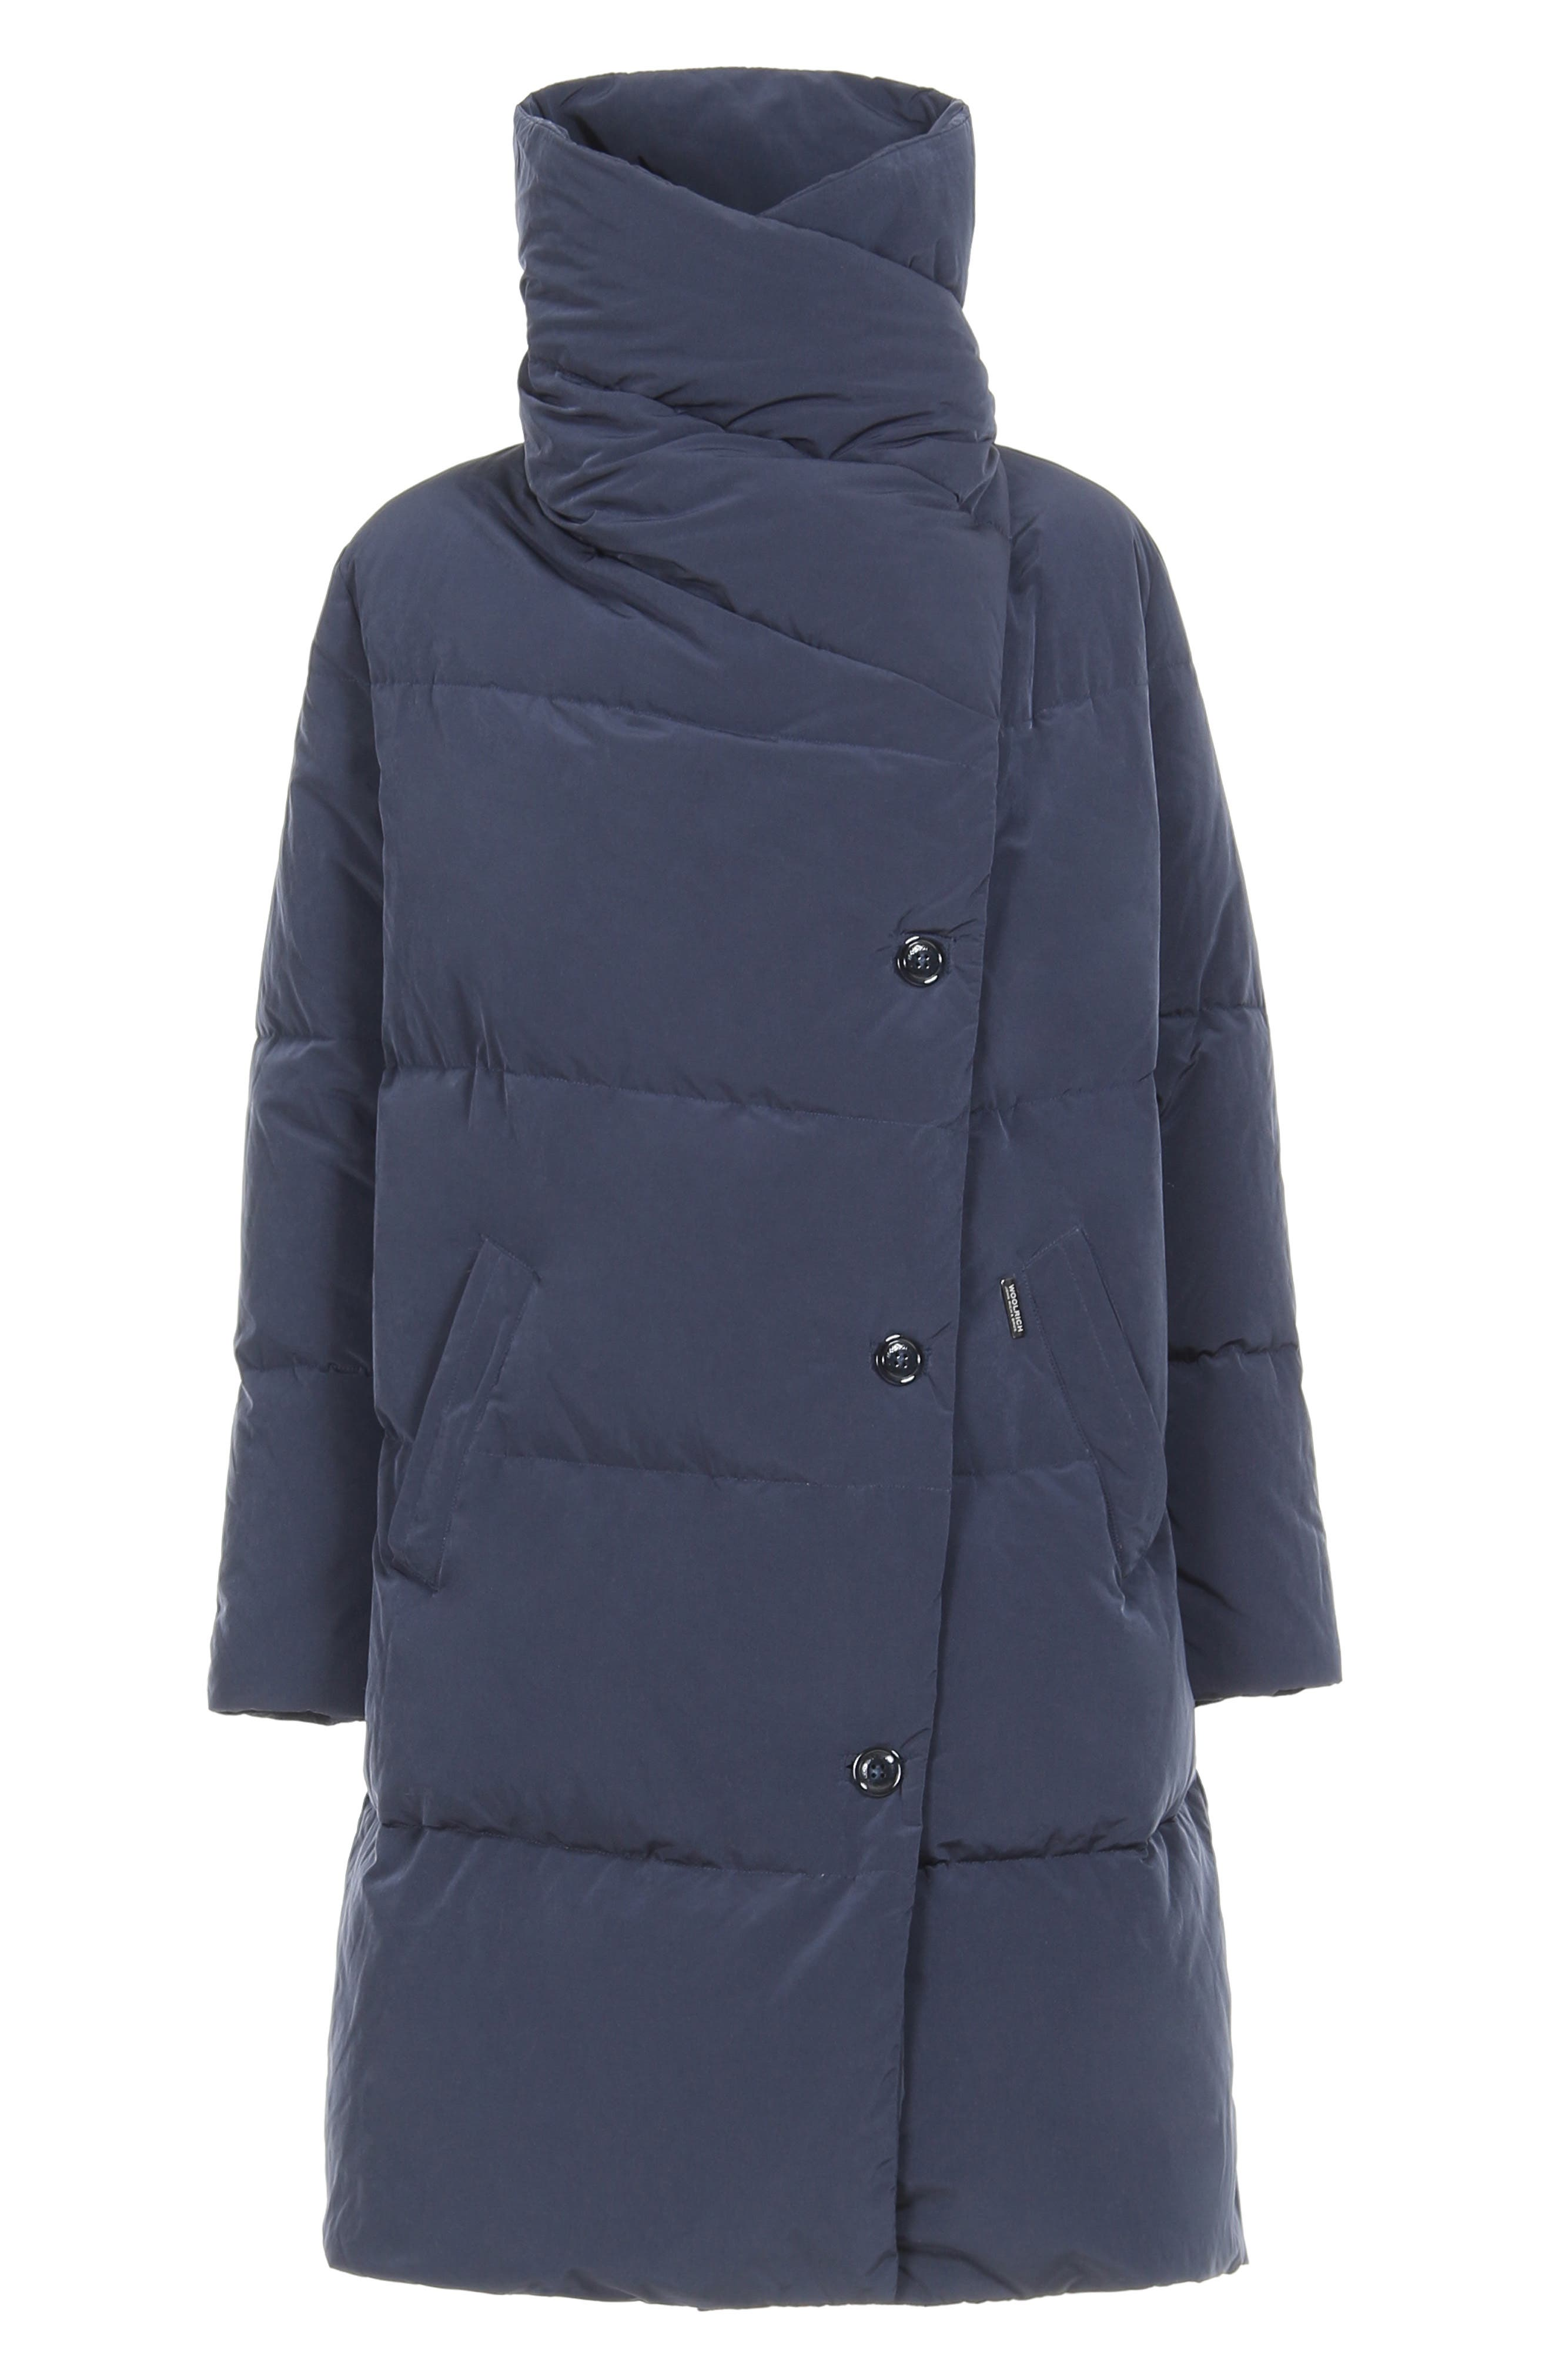 WOOLRICH,                             Puffy Down Coat,                             Alternate thumbnail 9, color,                             400